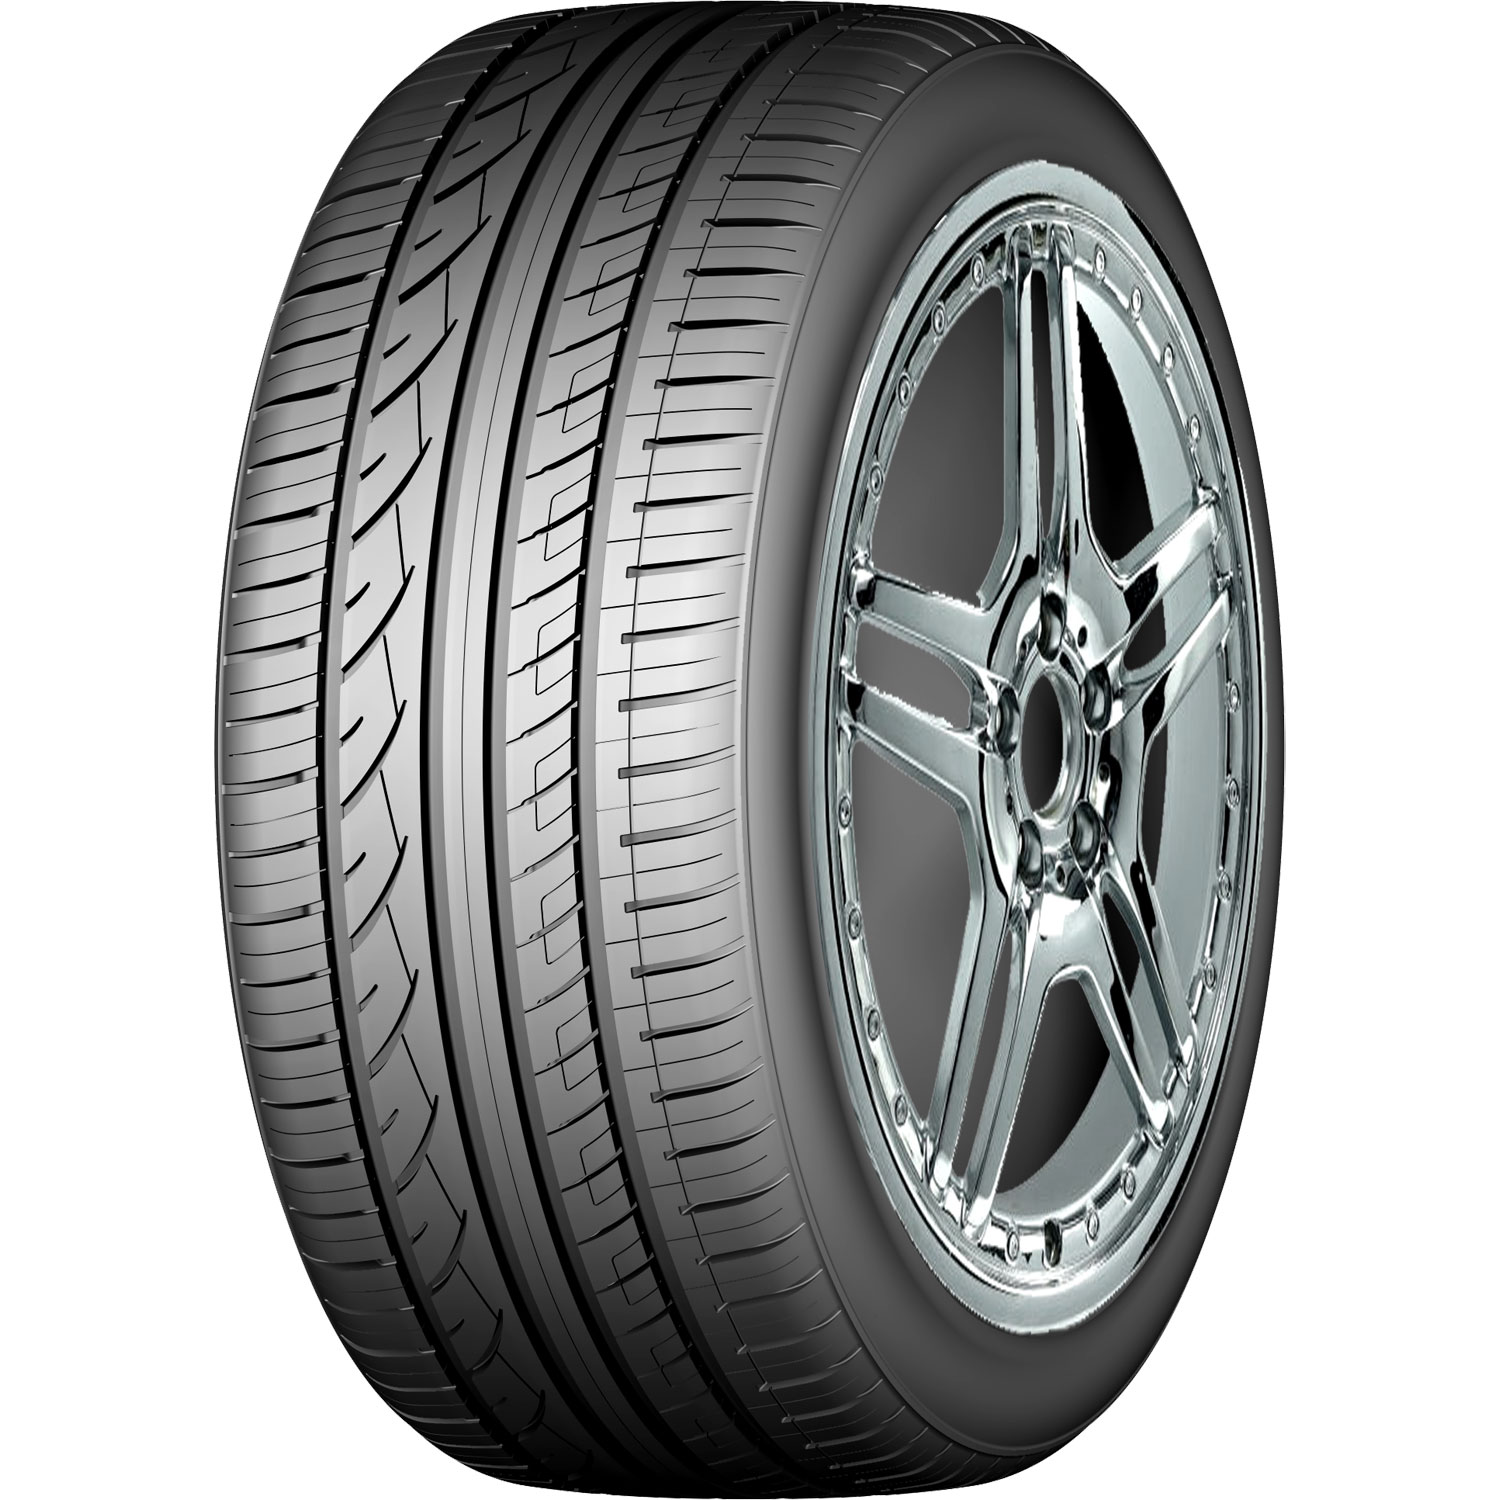 Rydanz Tires Roadster R02S Passenger All Season Tire - 235/30R22 90W